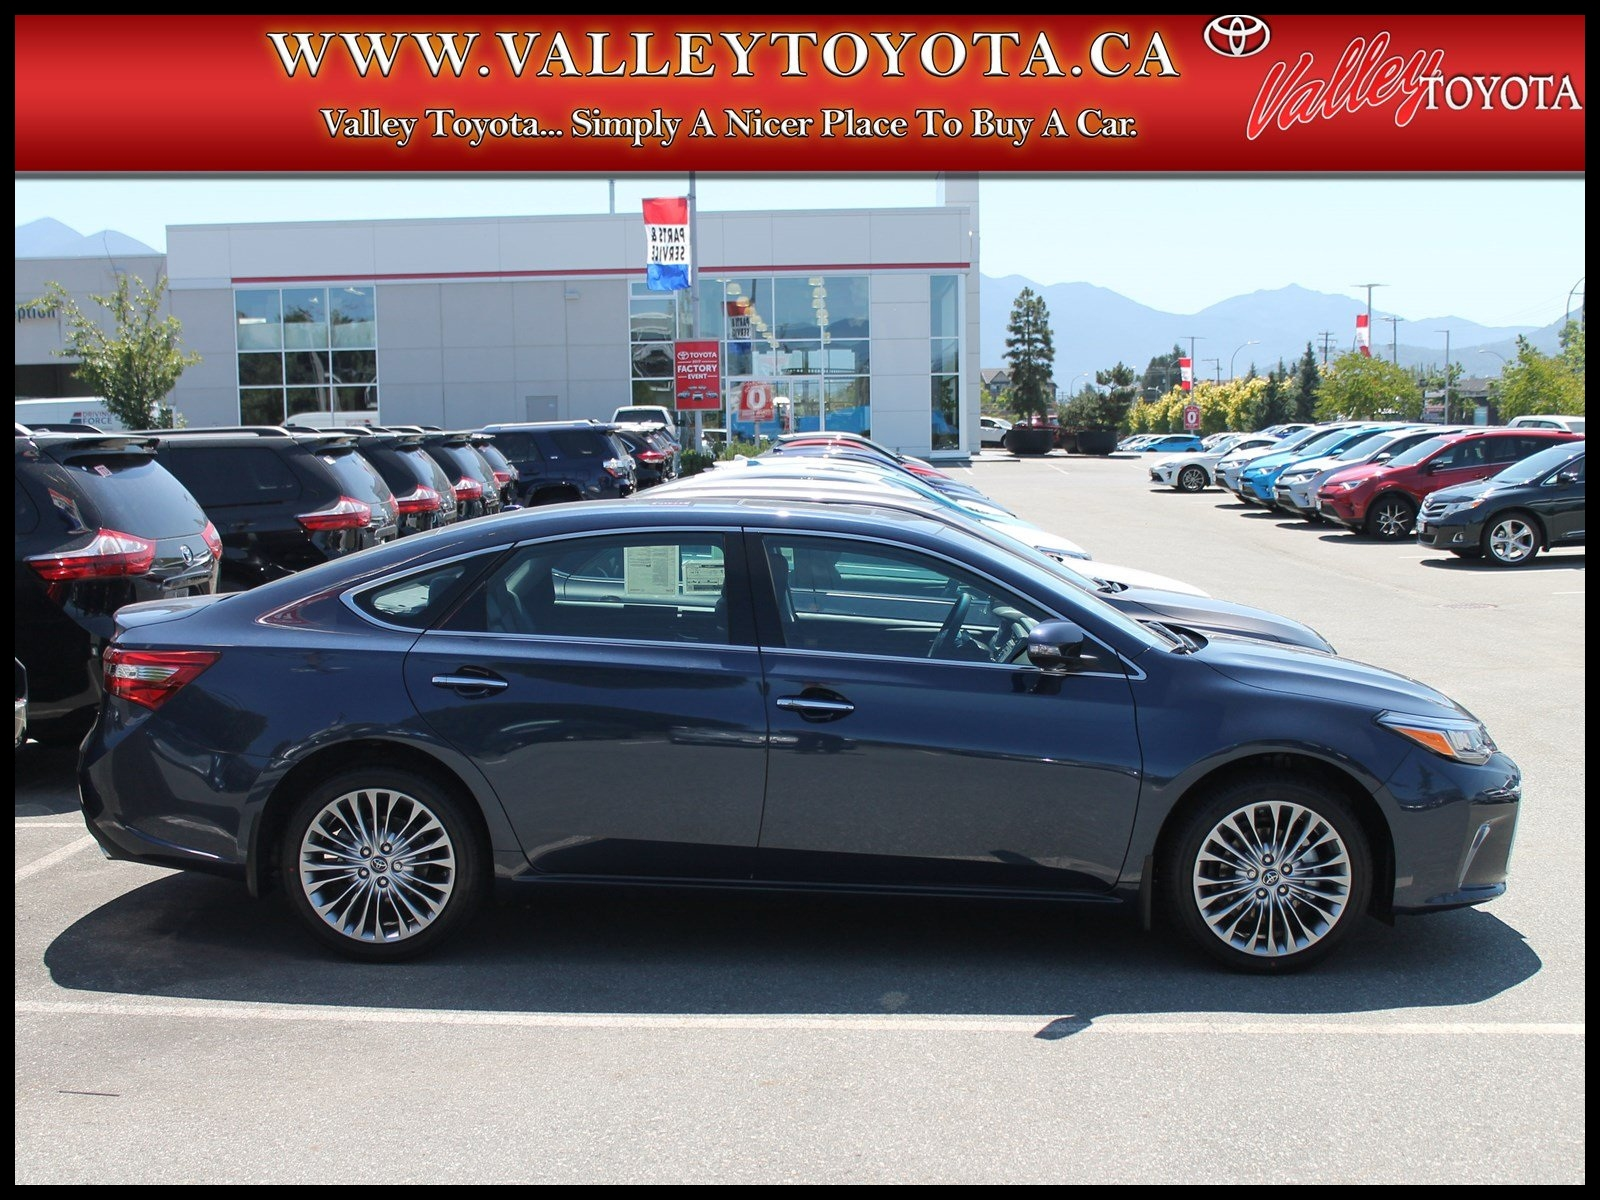 New New 2018 toyota Avalon Limited 4dr Car In Chilliwack Bb Price